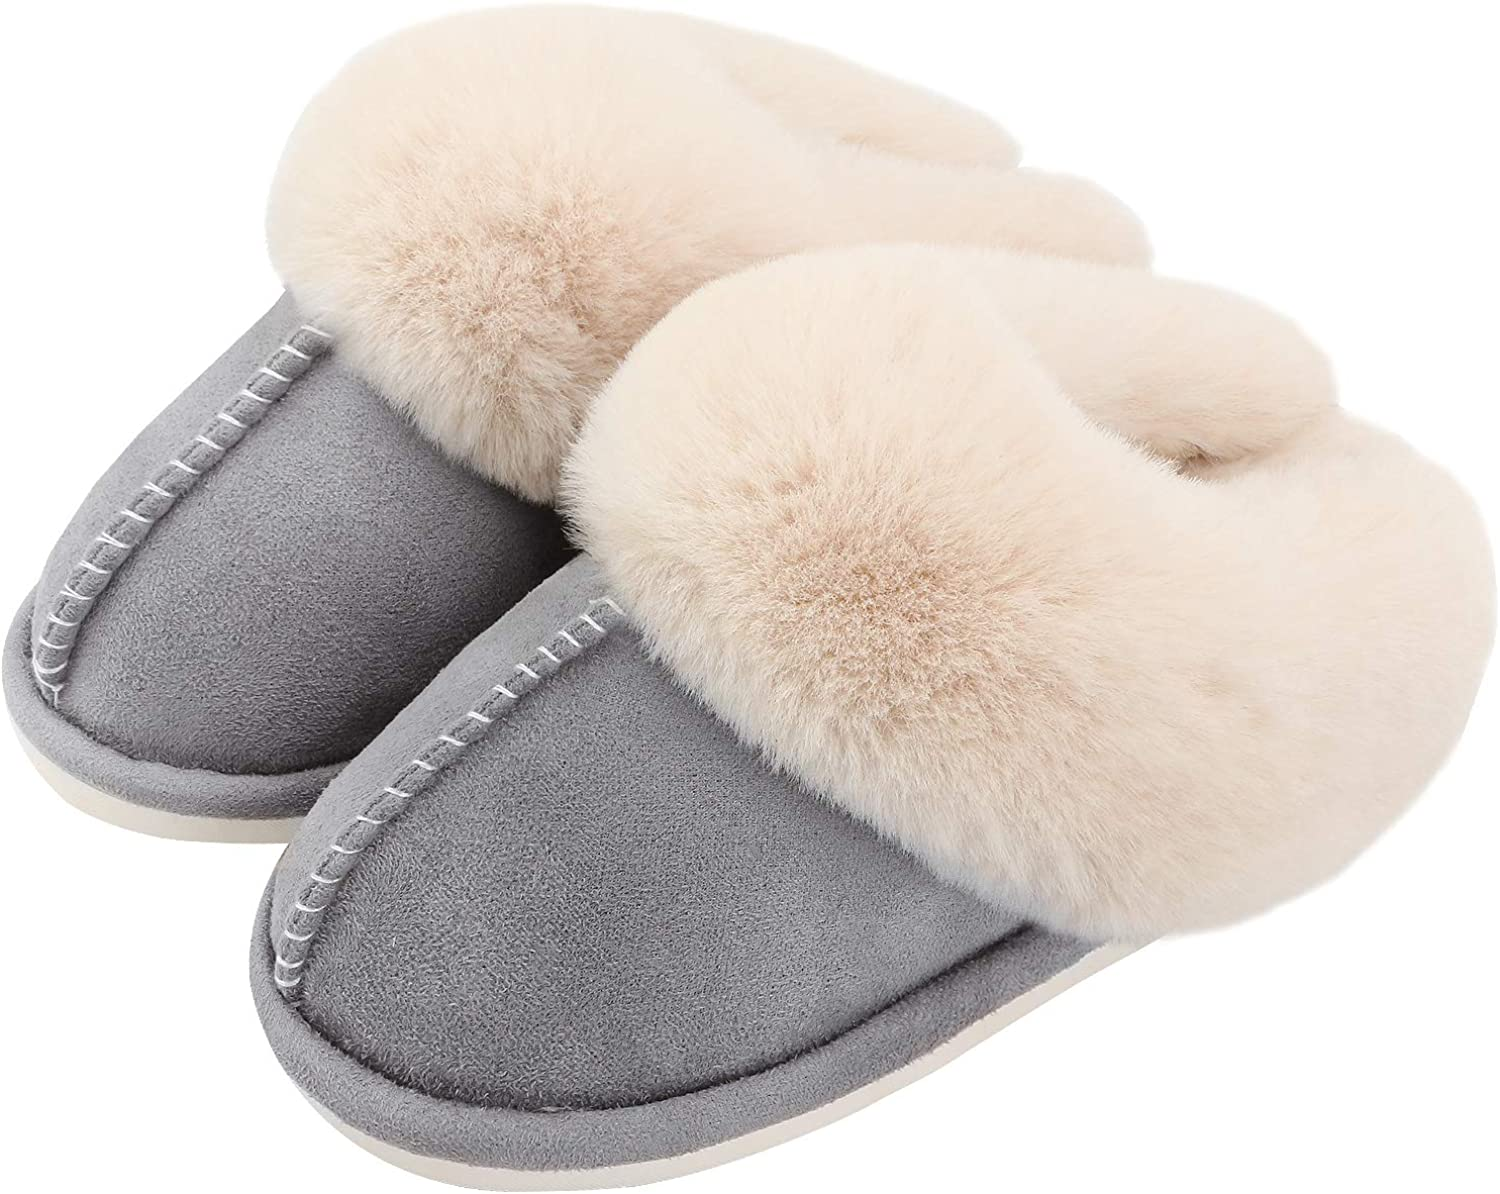 Ladies Womens Slippers Mule Slip On Fluffy Furry Comfy Cosy Indoor Shoes Size UK